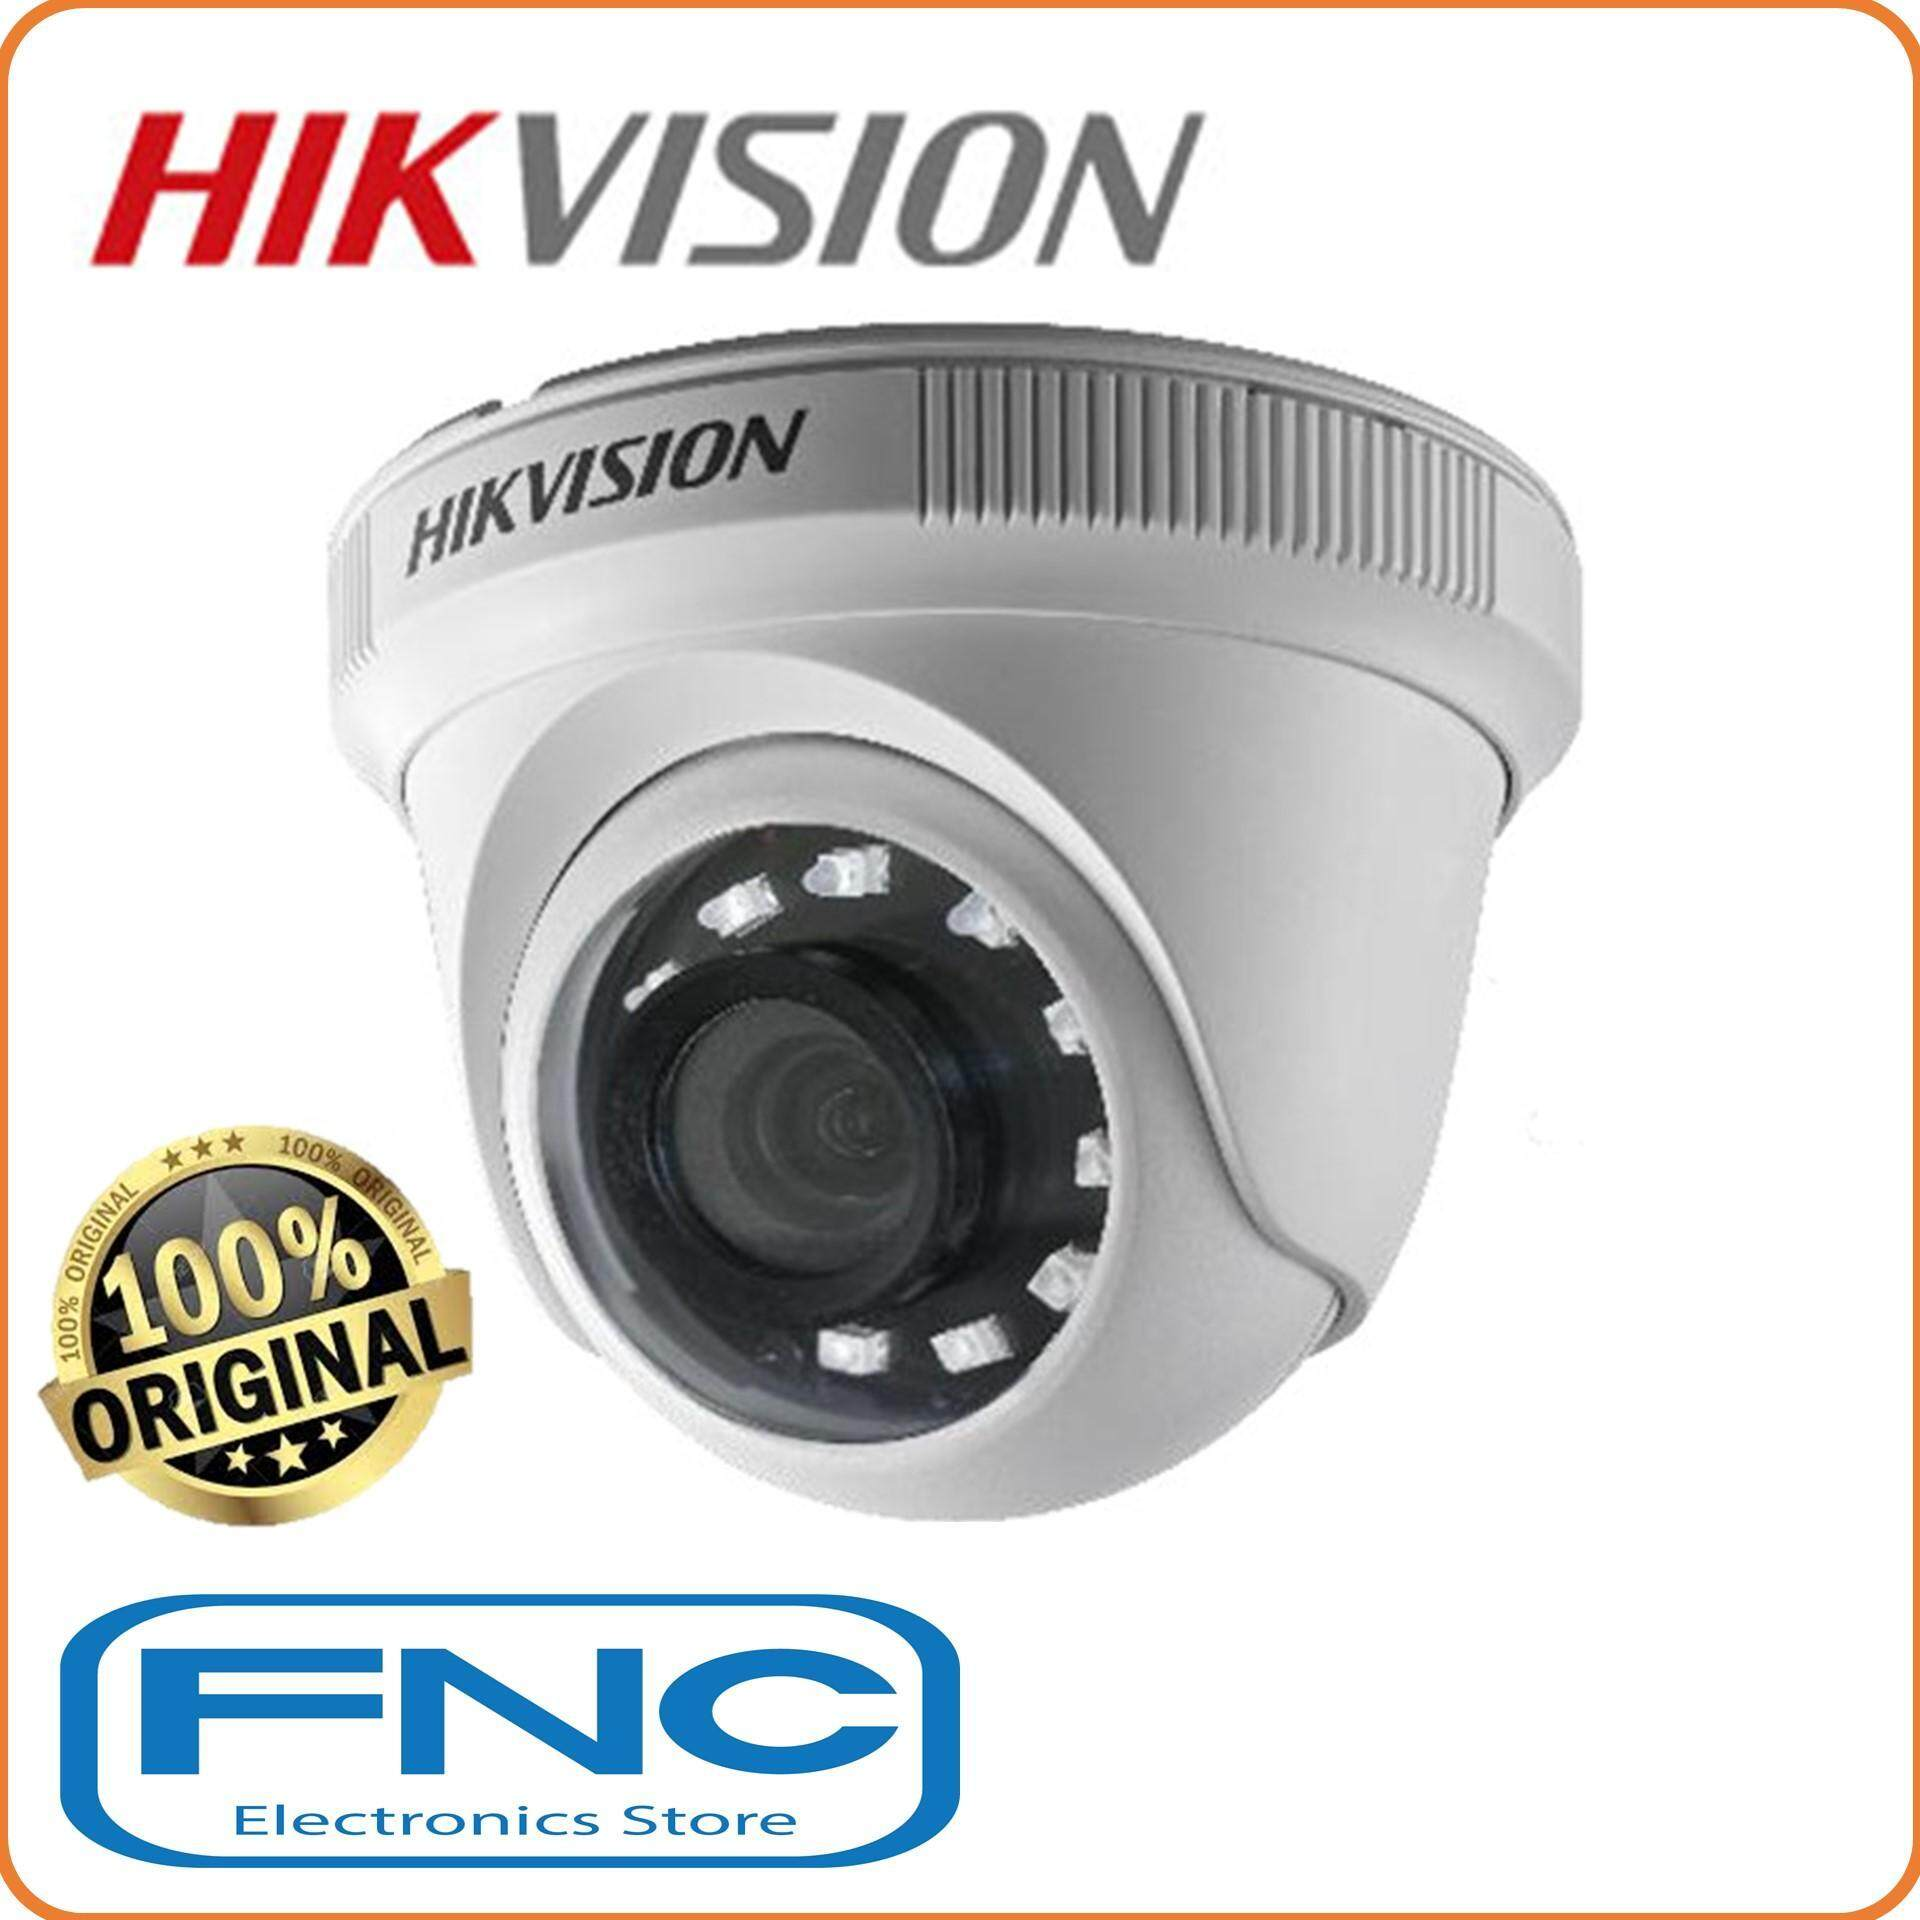 Hikvision Ds-2ce56d0t-Ipf Analog 2mp 1080p Fixed 3.6mm Lens 4 In 1 Video Output Switchable Indoor Ir Turret Dome Camera By Fnc Electronics Store.